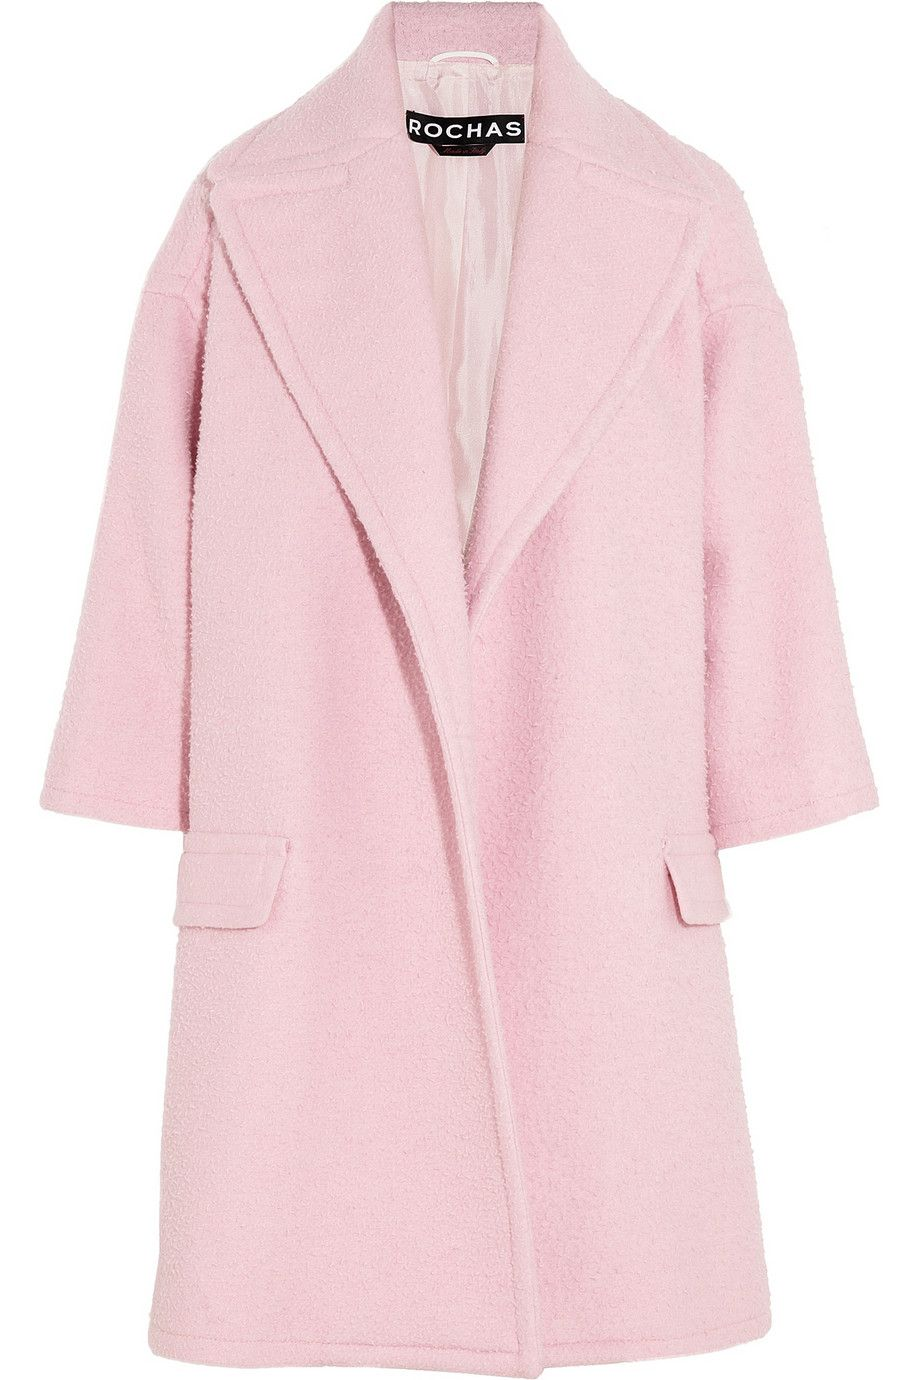 1000  images about the pink coat on Pinterest | Cara delevingne